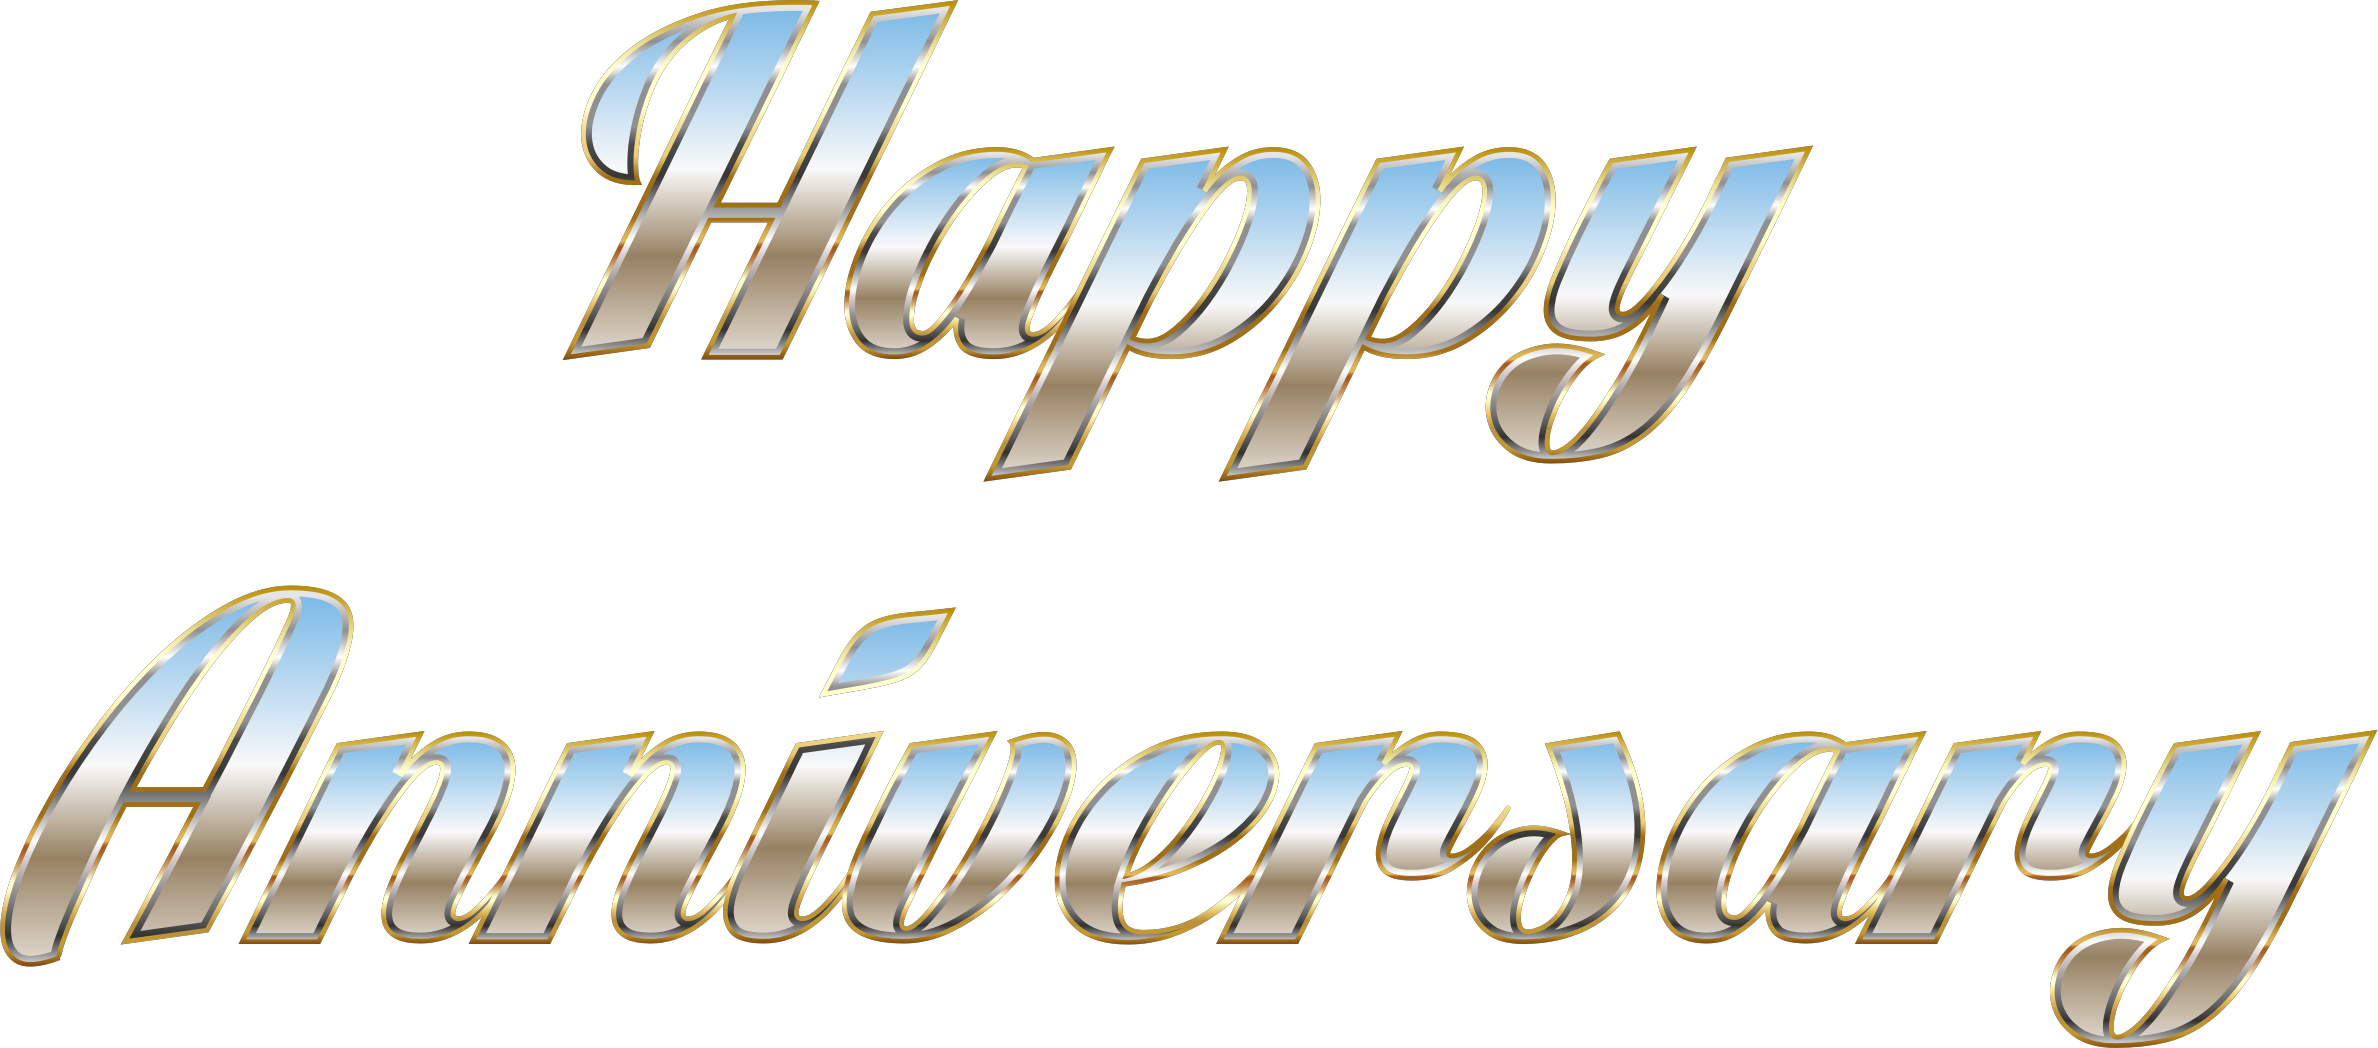 Happy church anniversary clipart images gallery for free download.